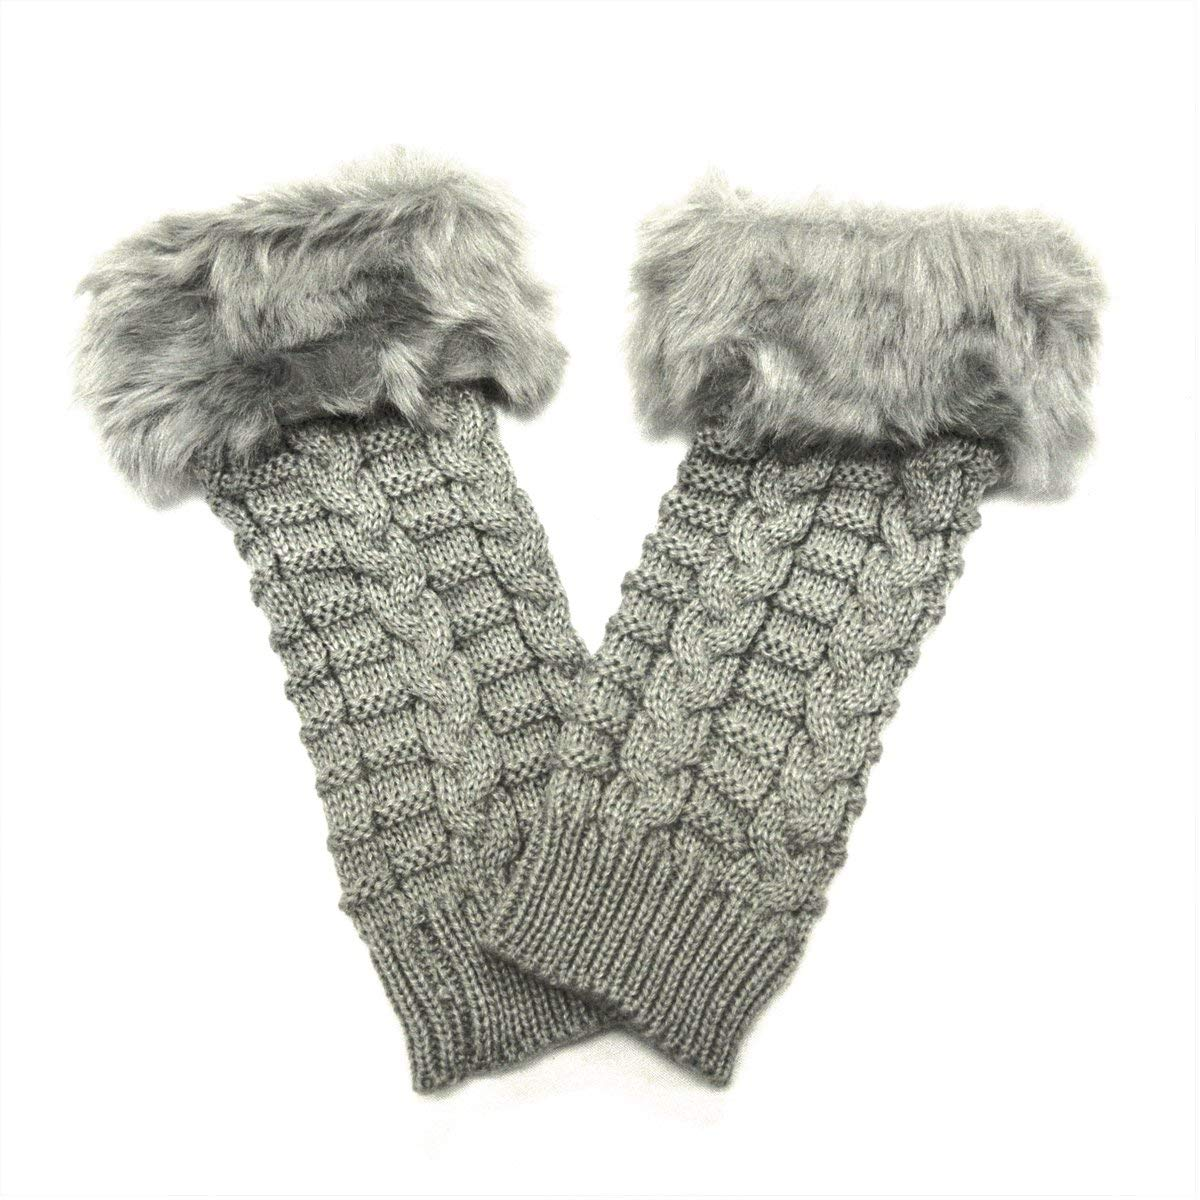 17ded516d20 Get Quotations · Wrapables Fingerless Gloves with Faux Fur Trim - Gray